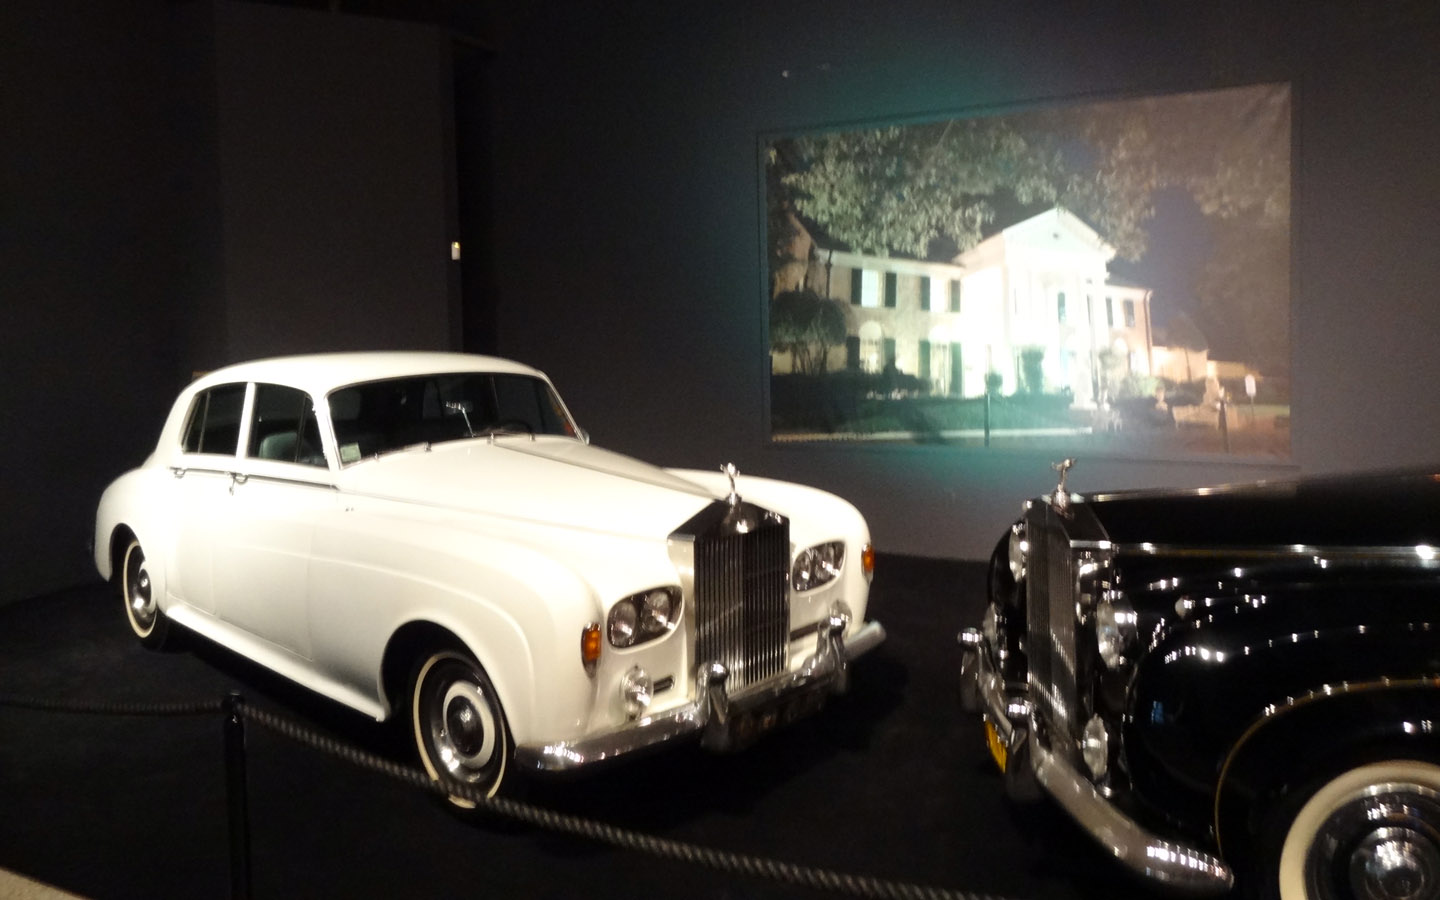 Elvis Presley's cars in Graceland, Memphis, Tennessee USA 2014